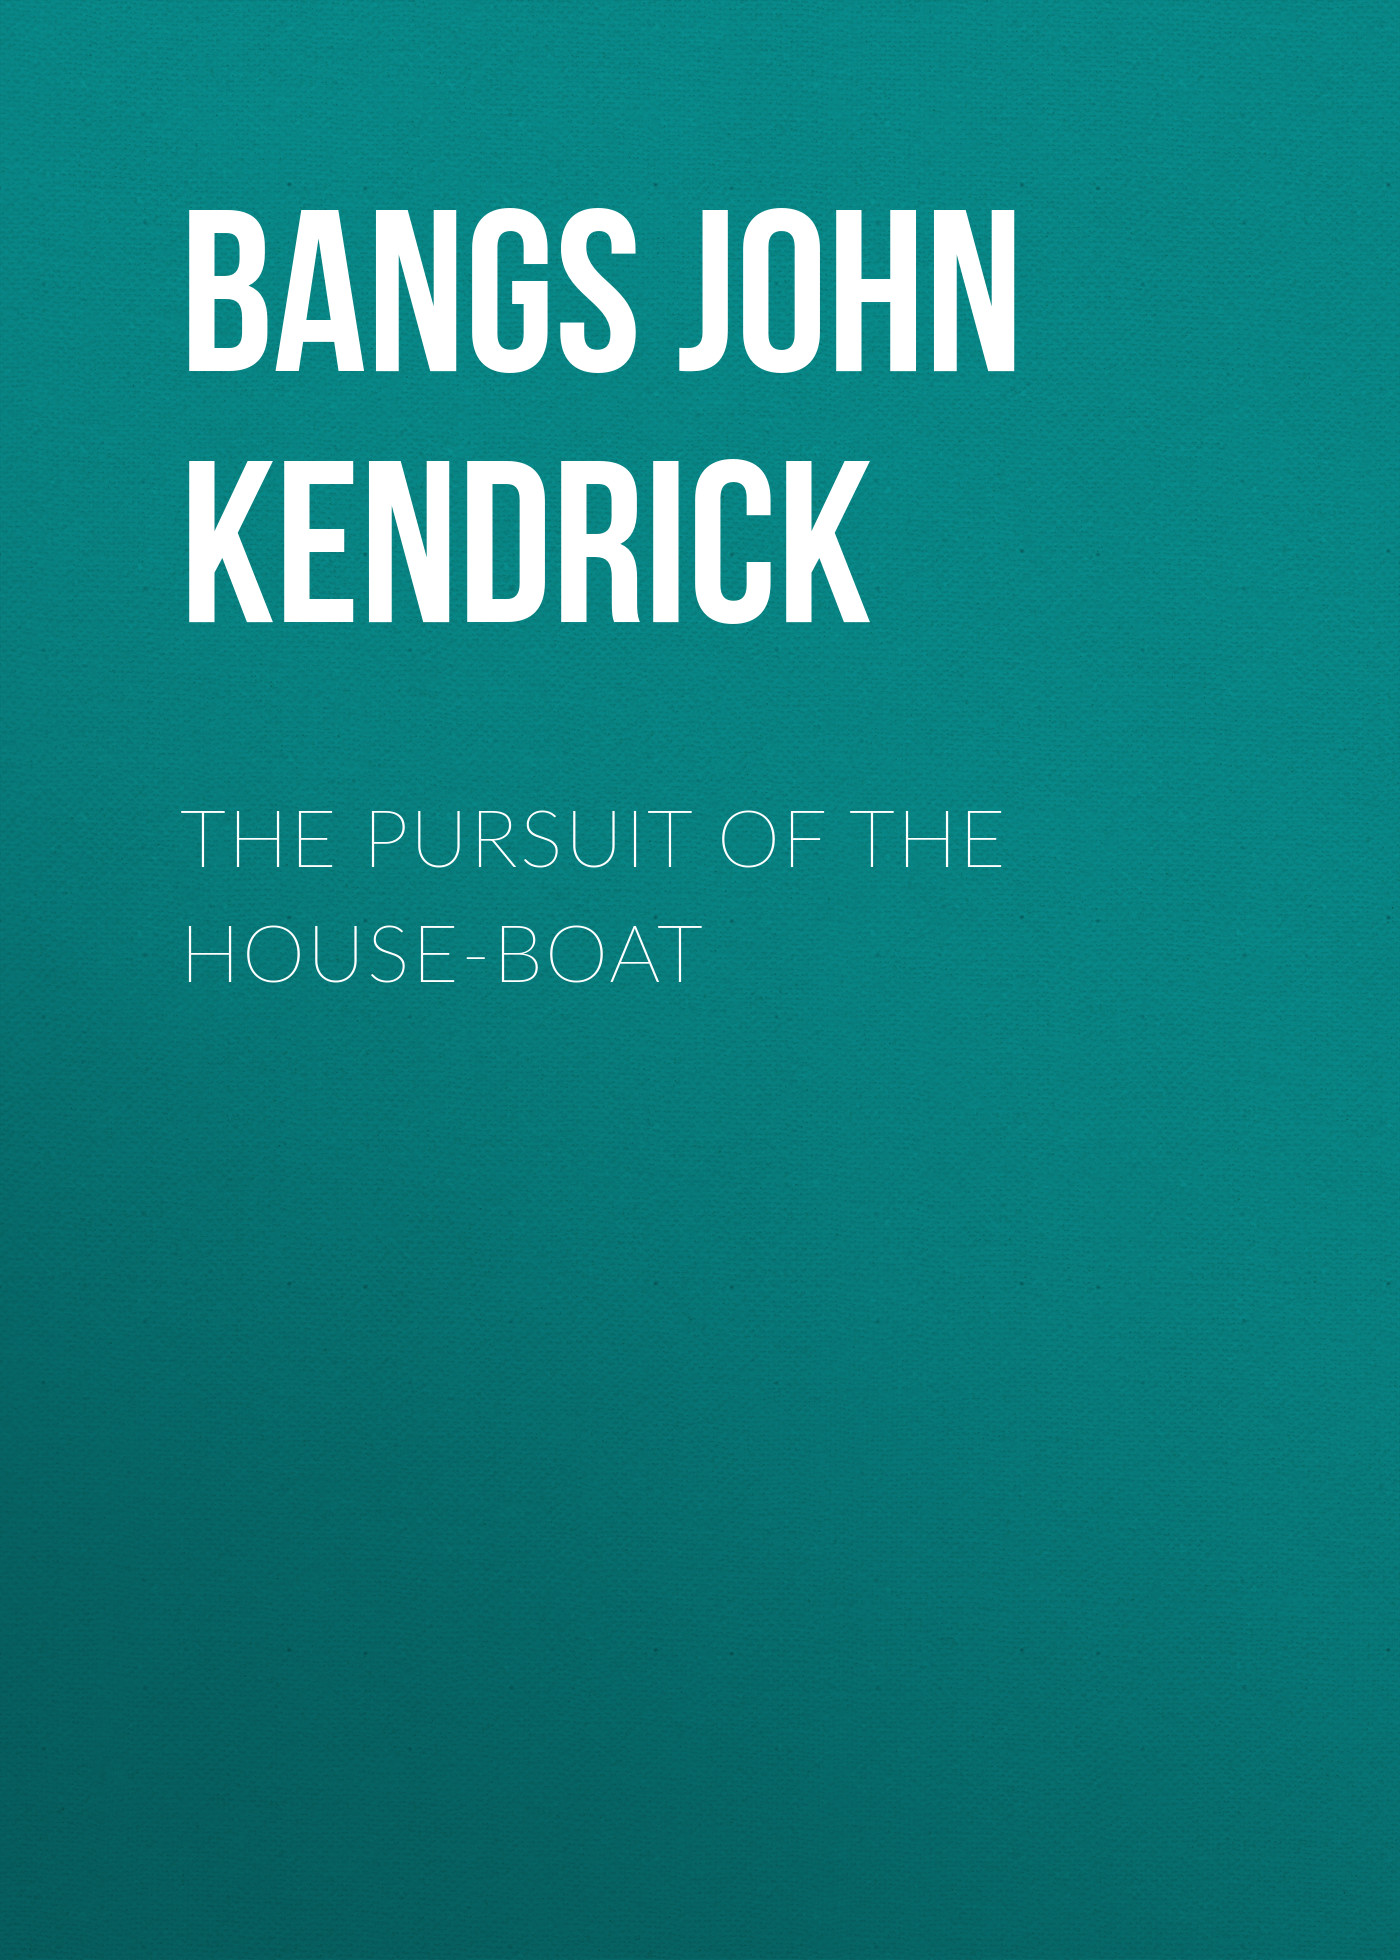 лучшая цена Bangs John Kendrick The Pursuit of the House-Boat